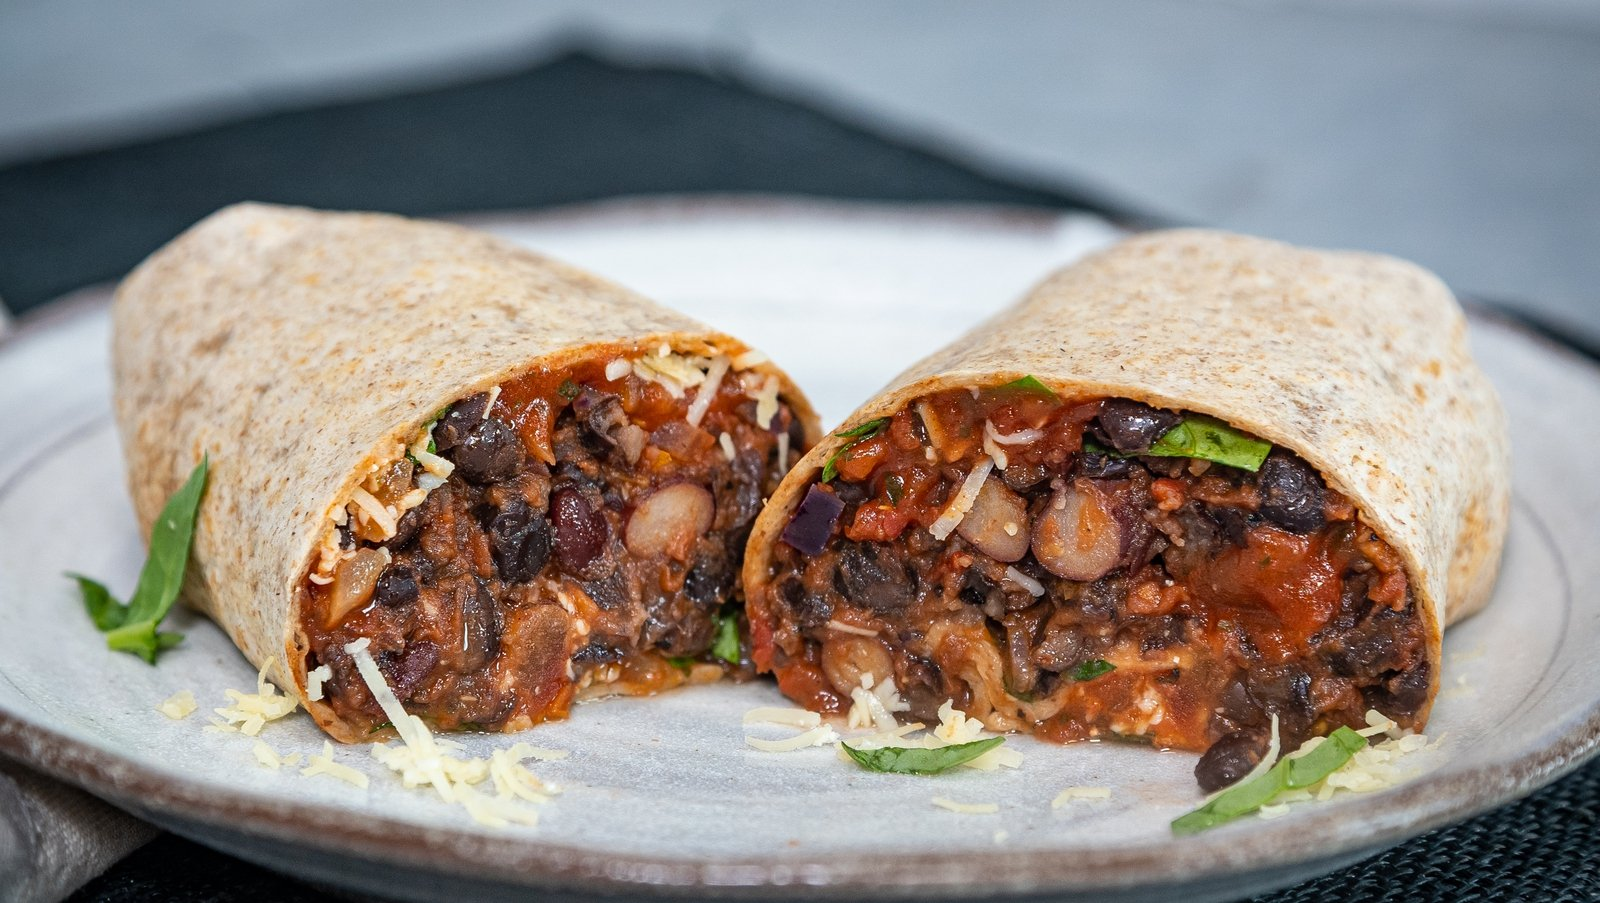 Black Bean Burrito Ot Meal Plan